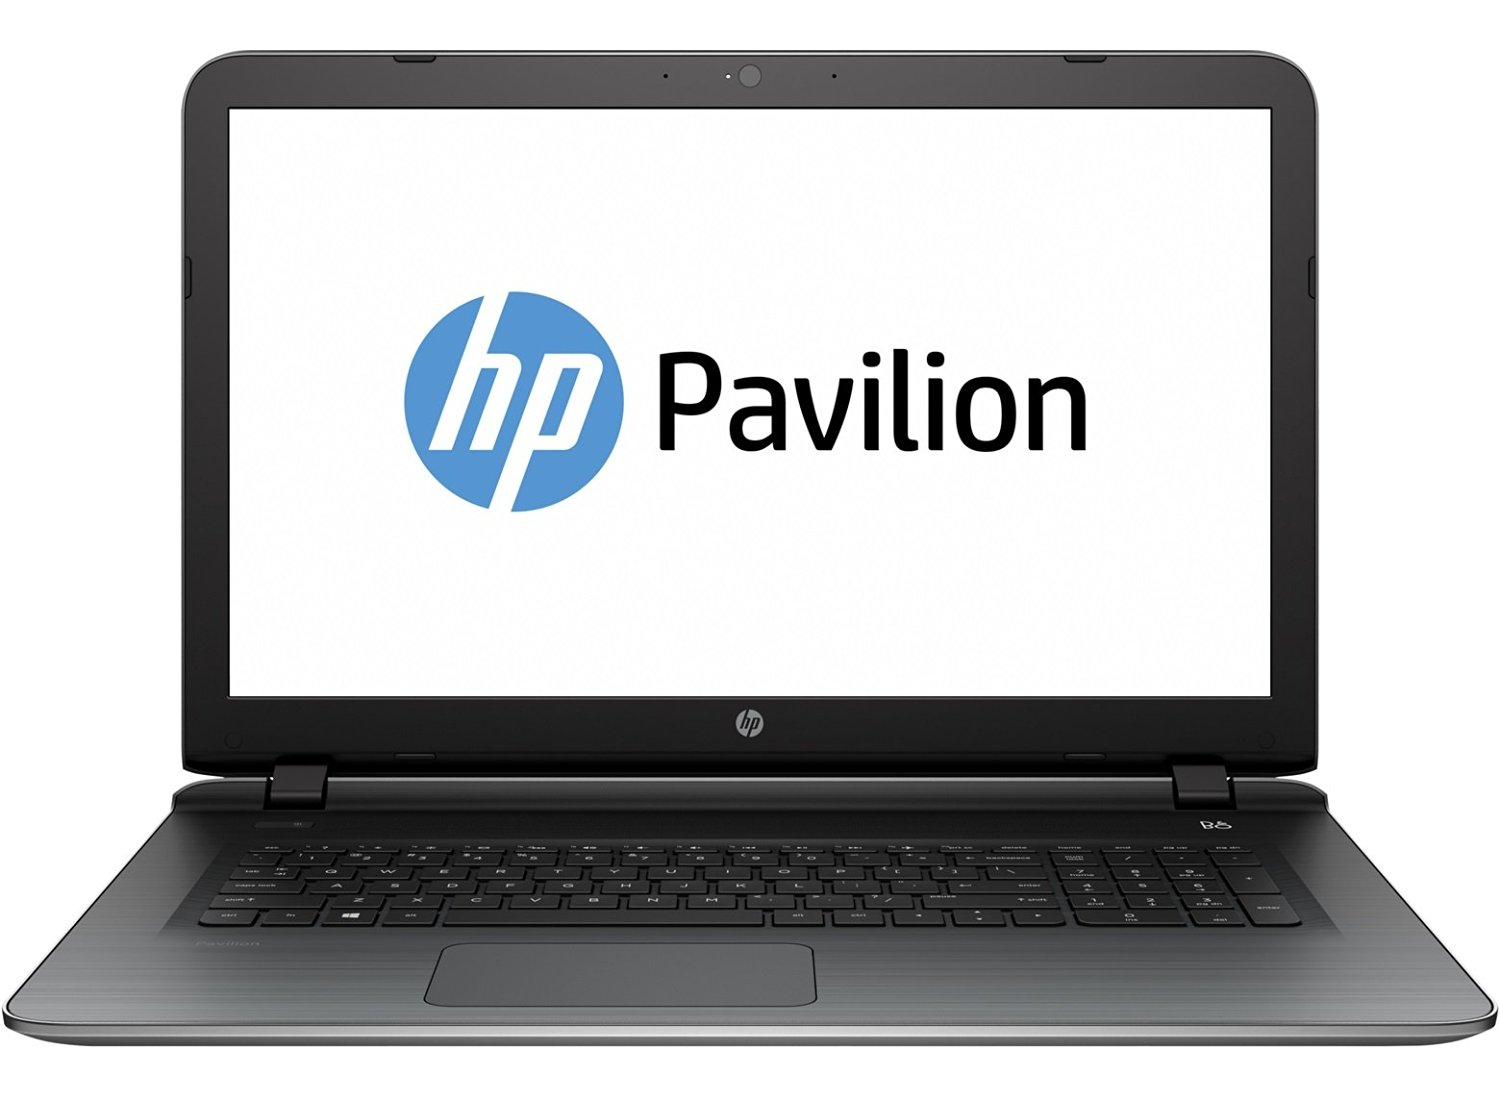 HP PAVILION HDX9001TX WINDOWS 8 X64 DRIVER DOWNLOAD